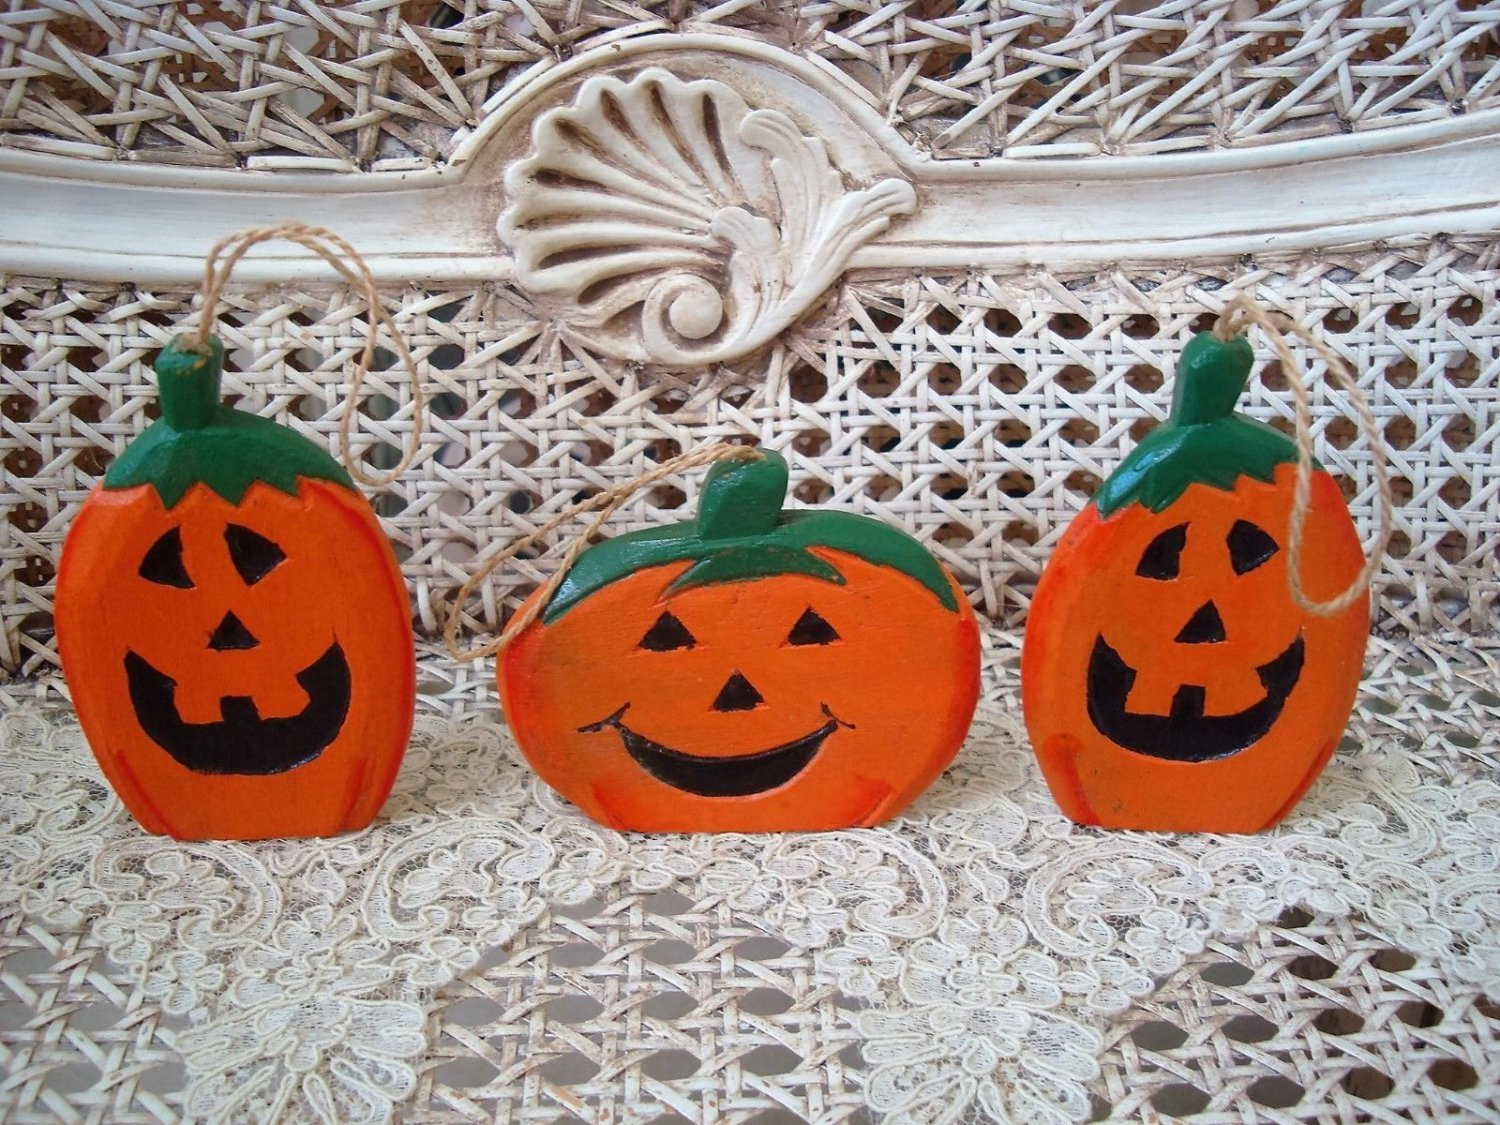 3 ADORABLE PUMPKIN JACK O'LANTERN HALLOWEEN ORNAMENTS ***SO CUTE***